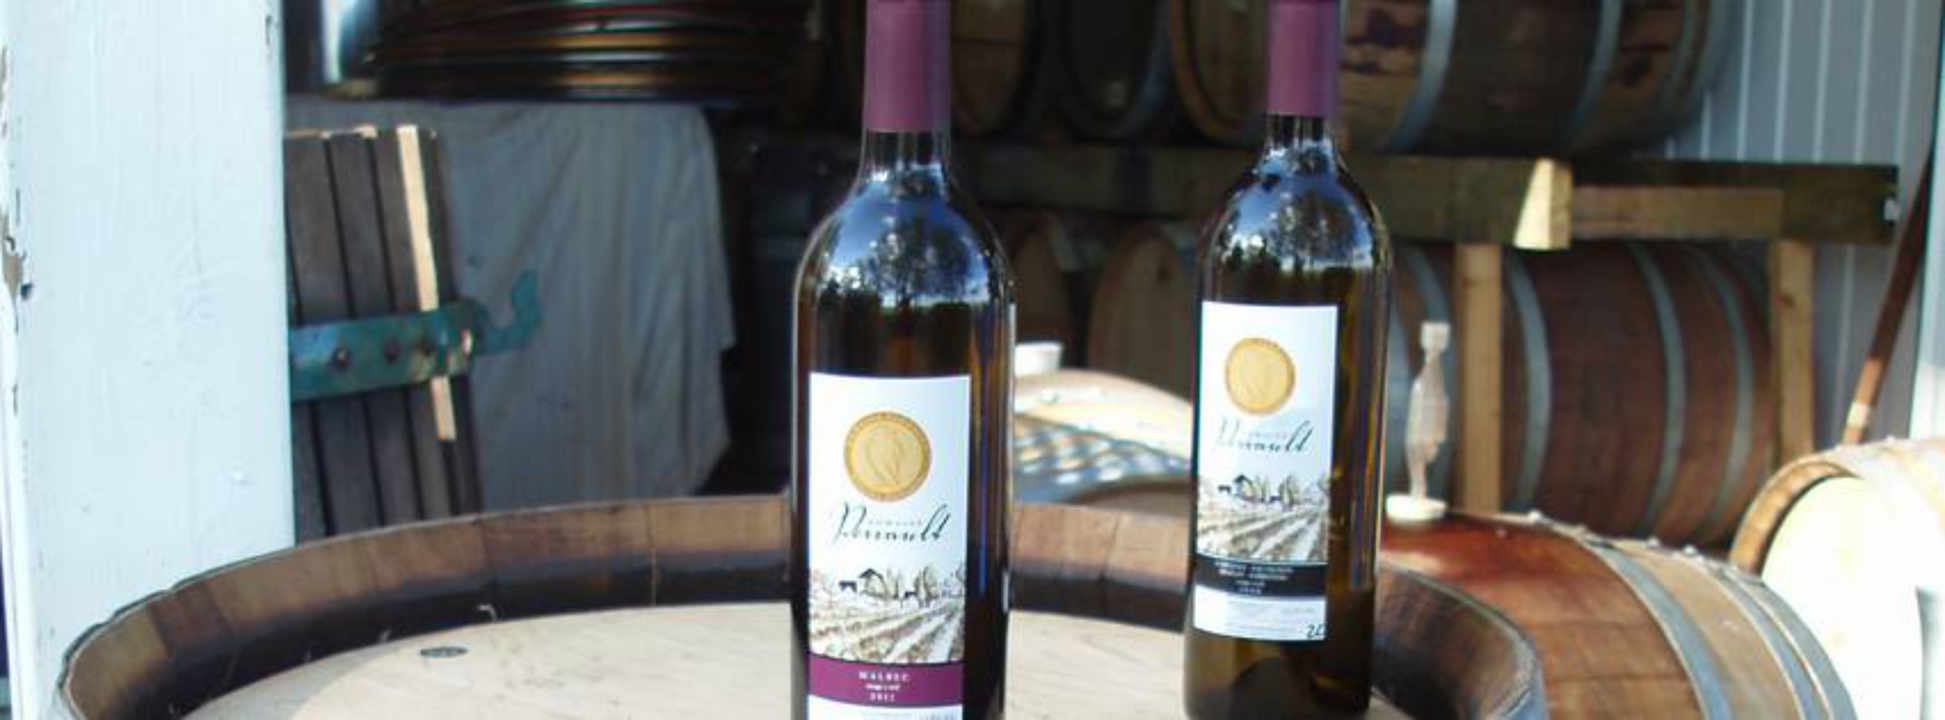 Vineyard wine bottles Domaine Perrault Winery Ottawa Ontario Canada Ulocal local product local purchase